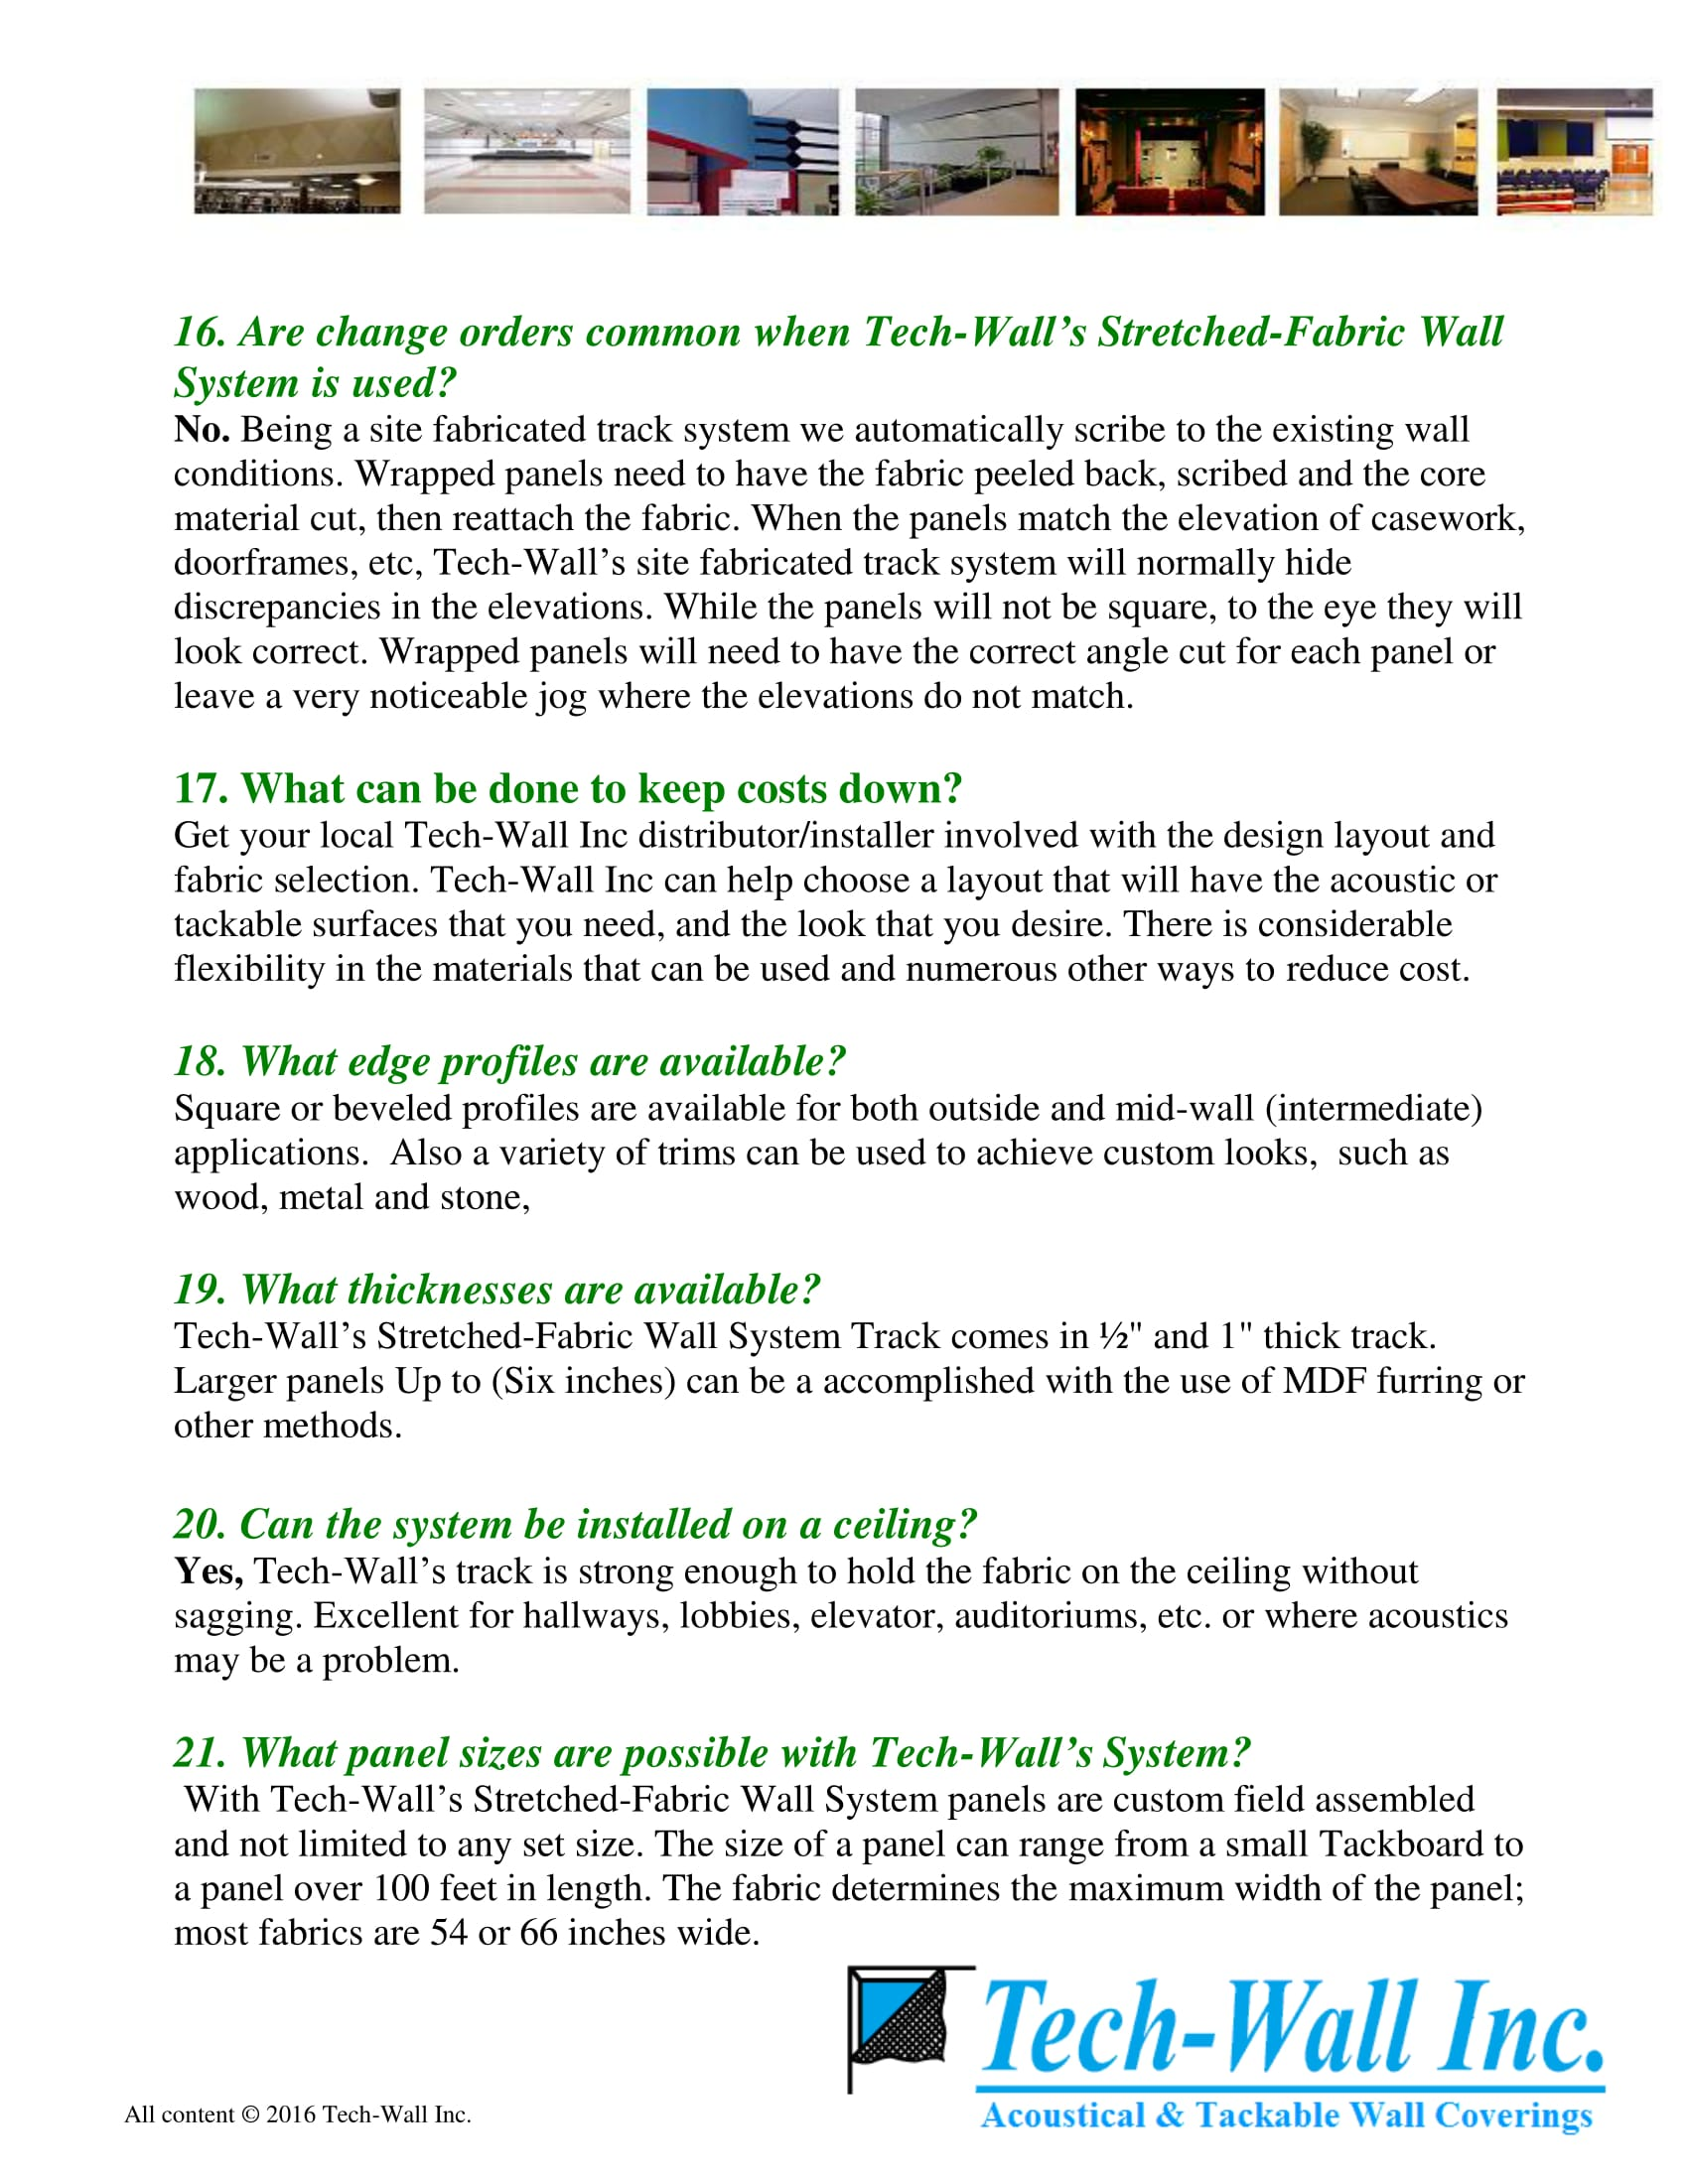 frequently-asked-questions-3-pages-4.jpg